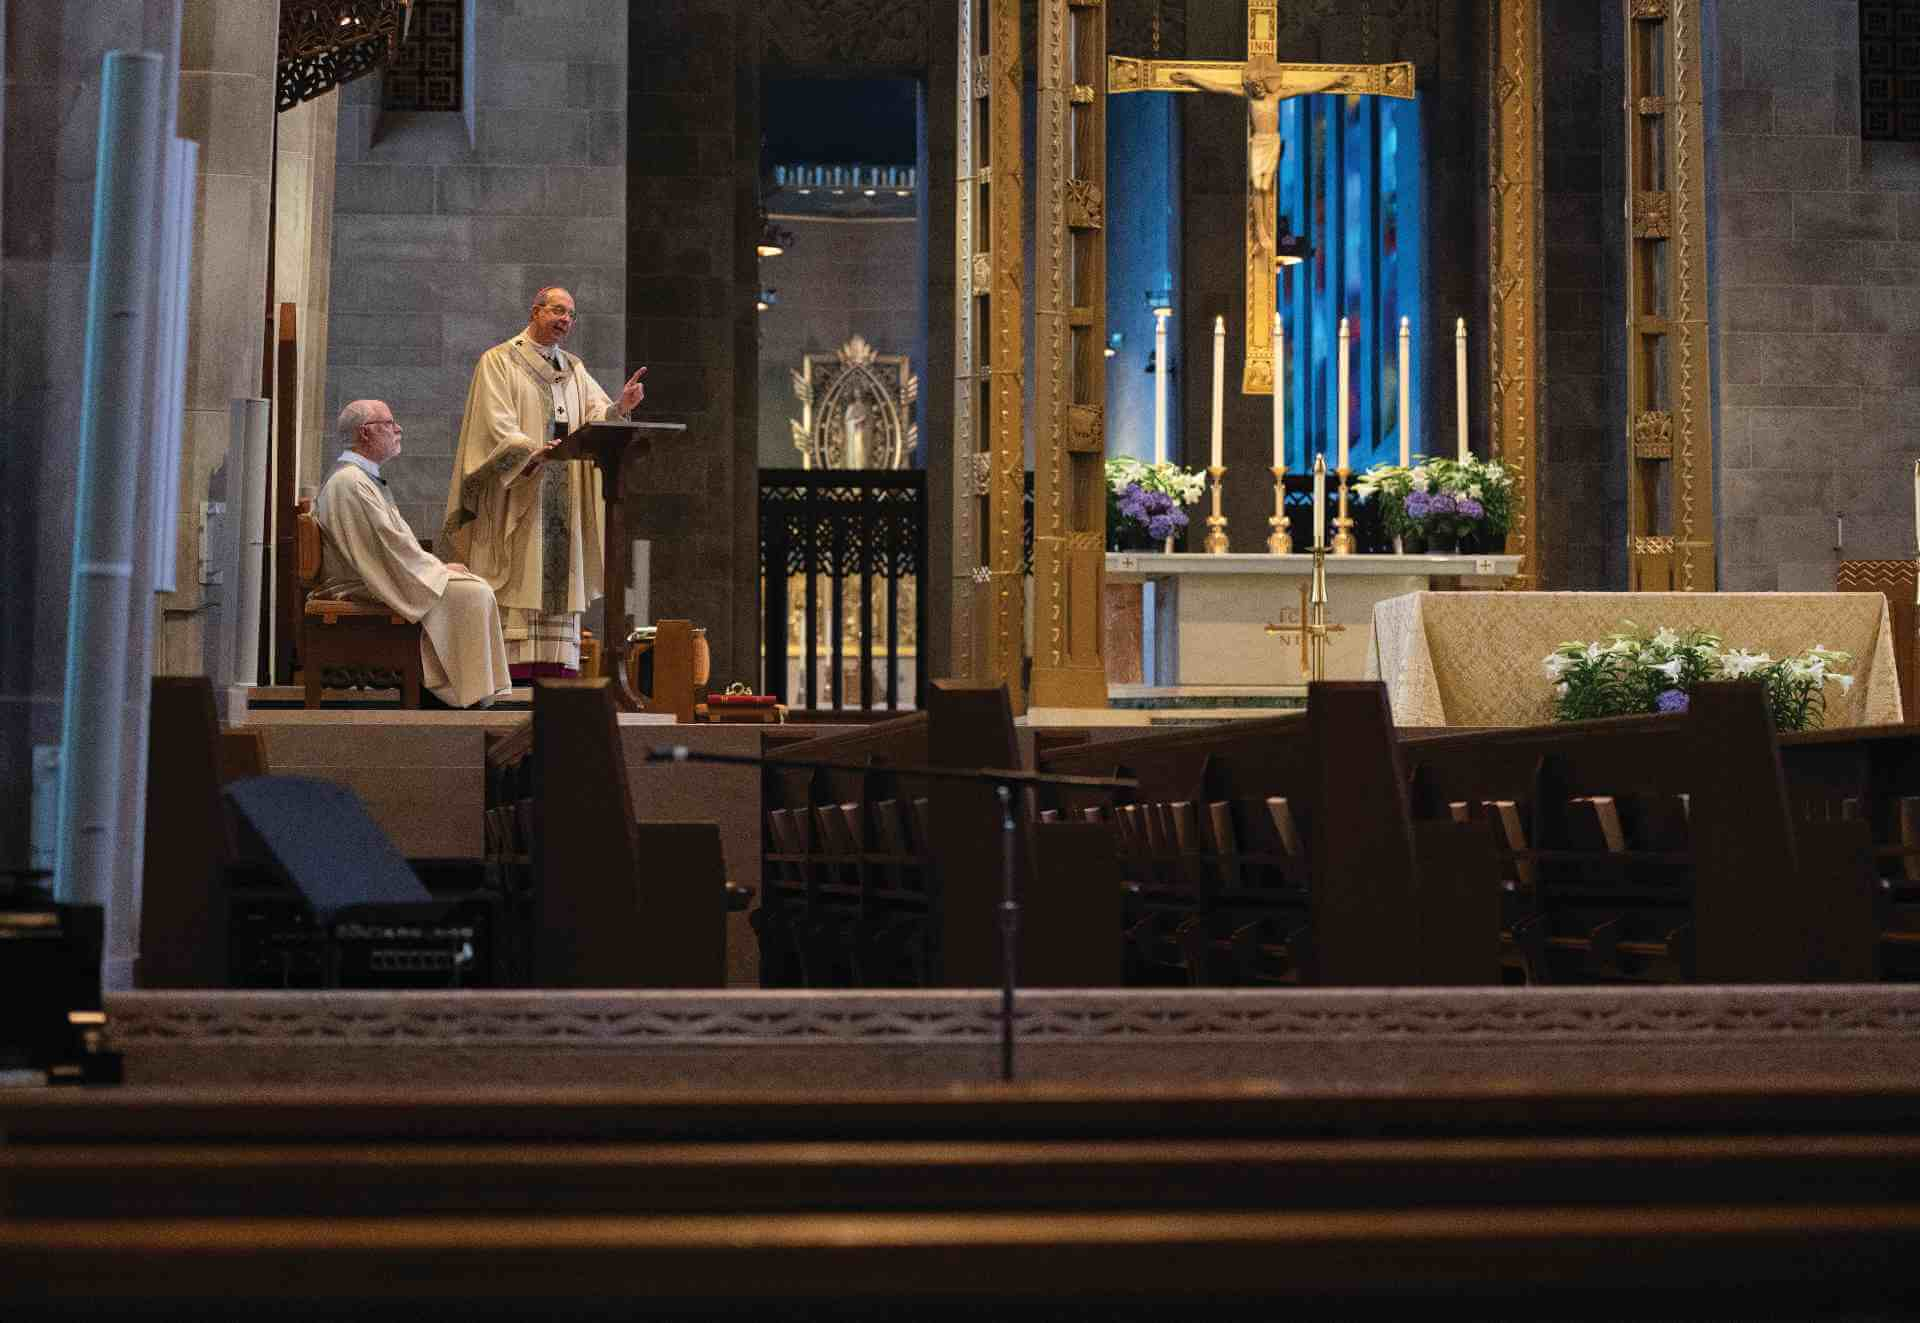 Silence in the domestic church